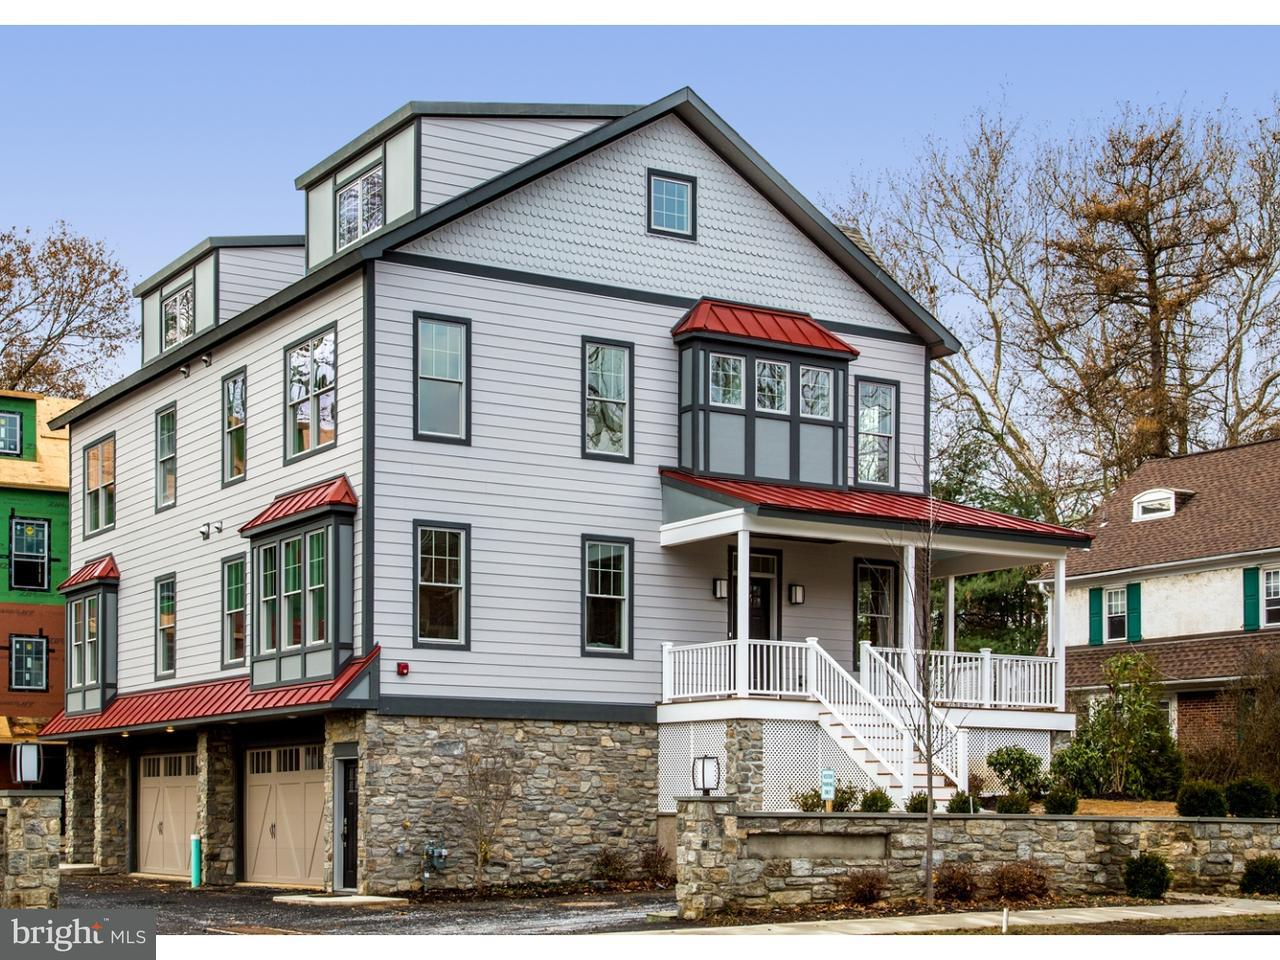 234 W Montgomery Haverford , PA 19041